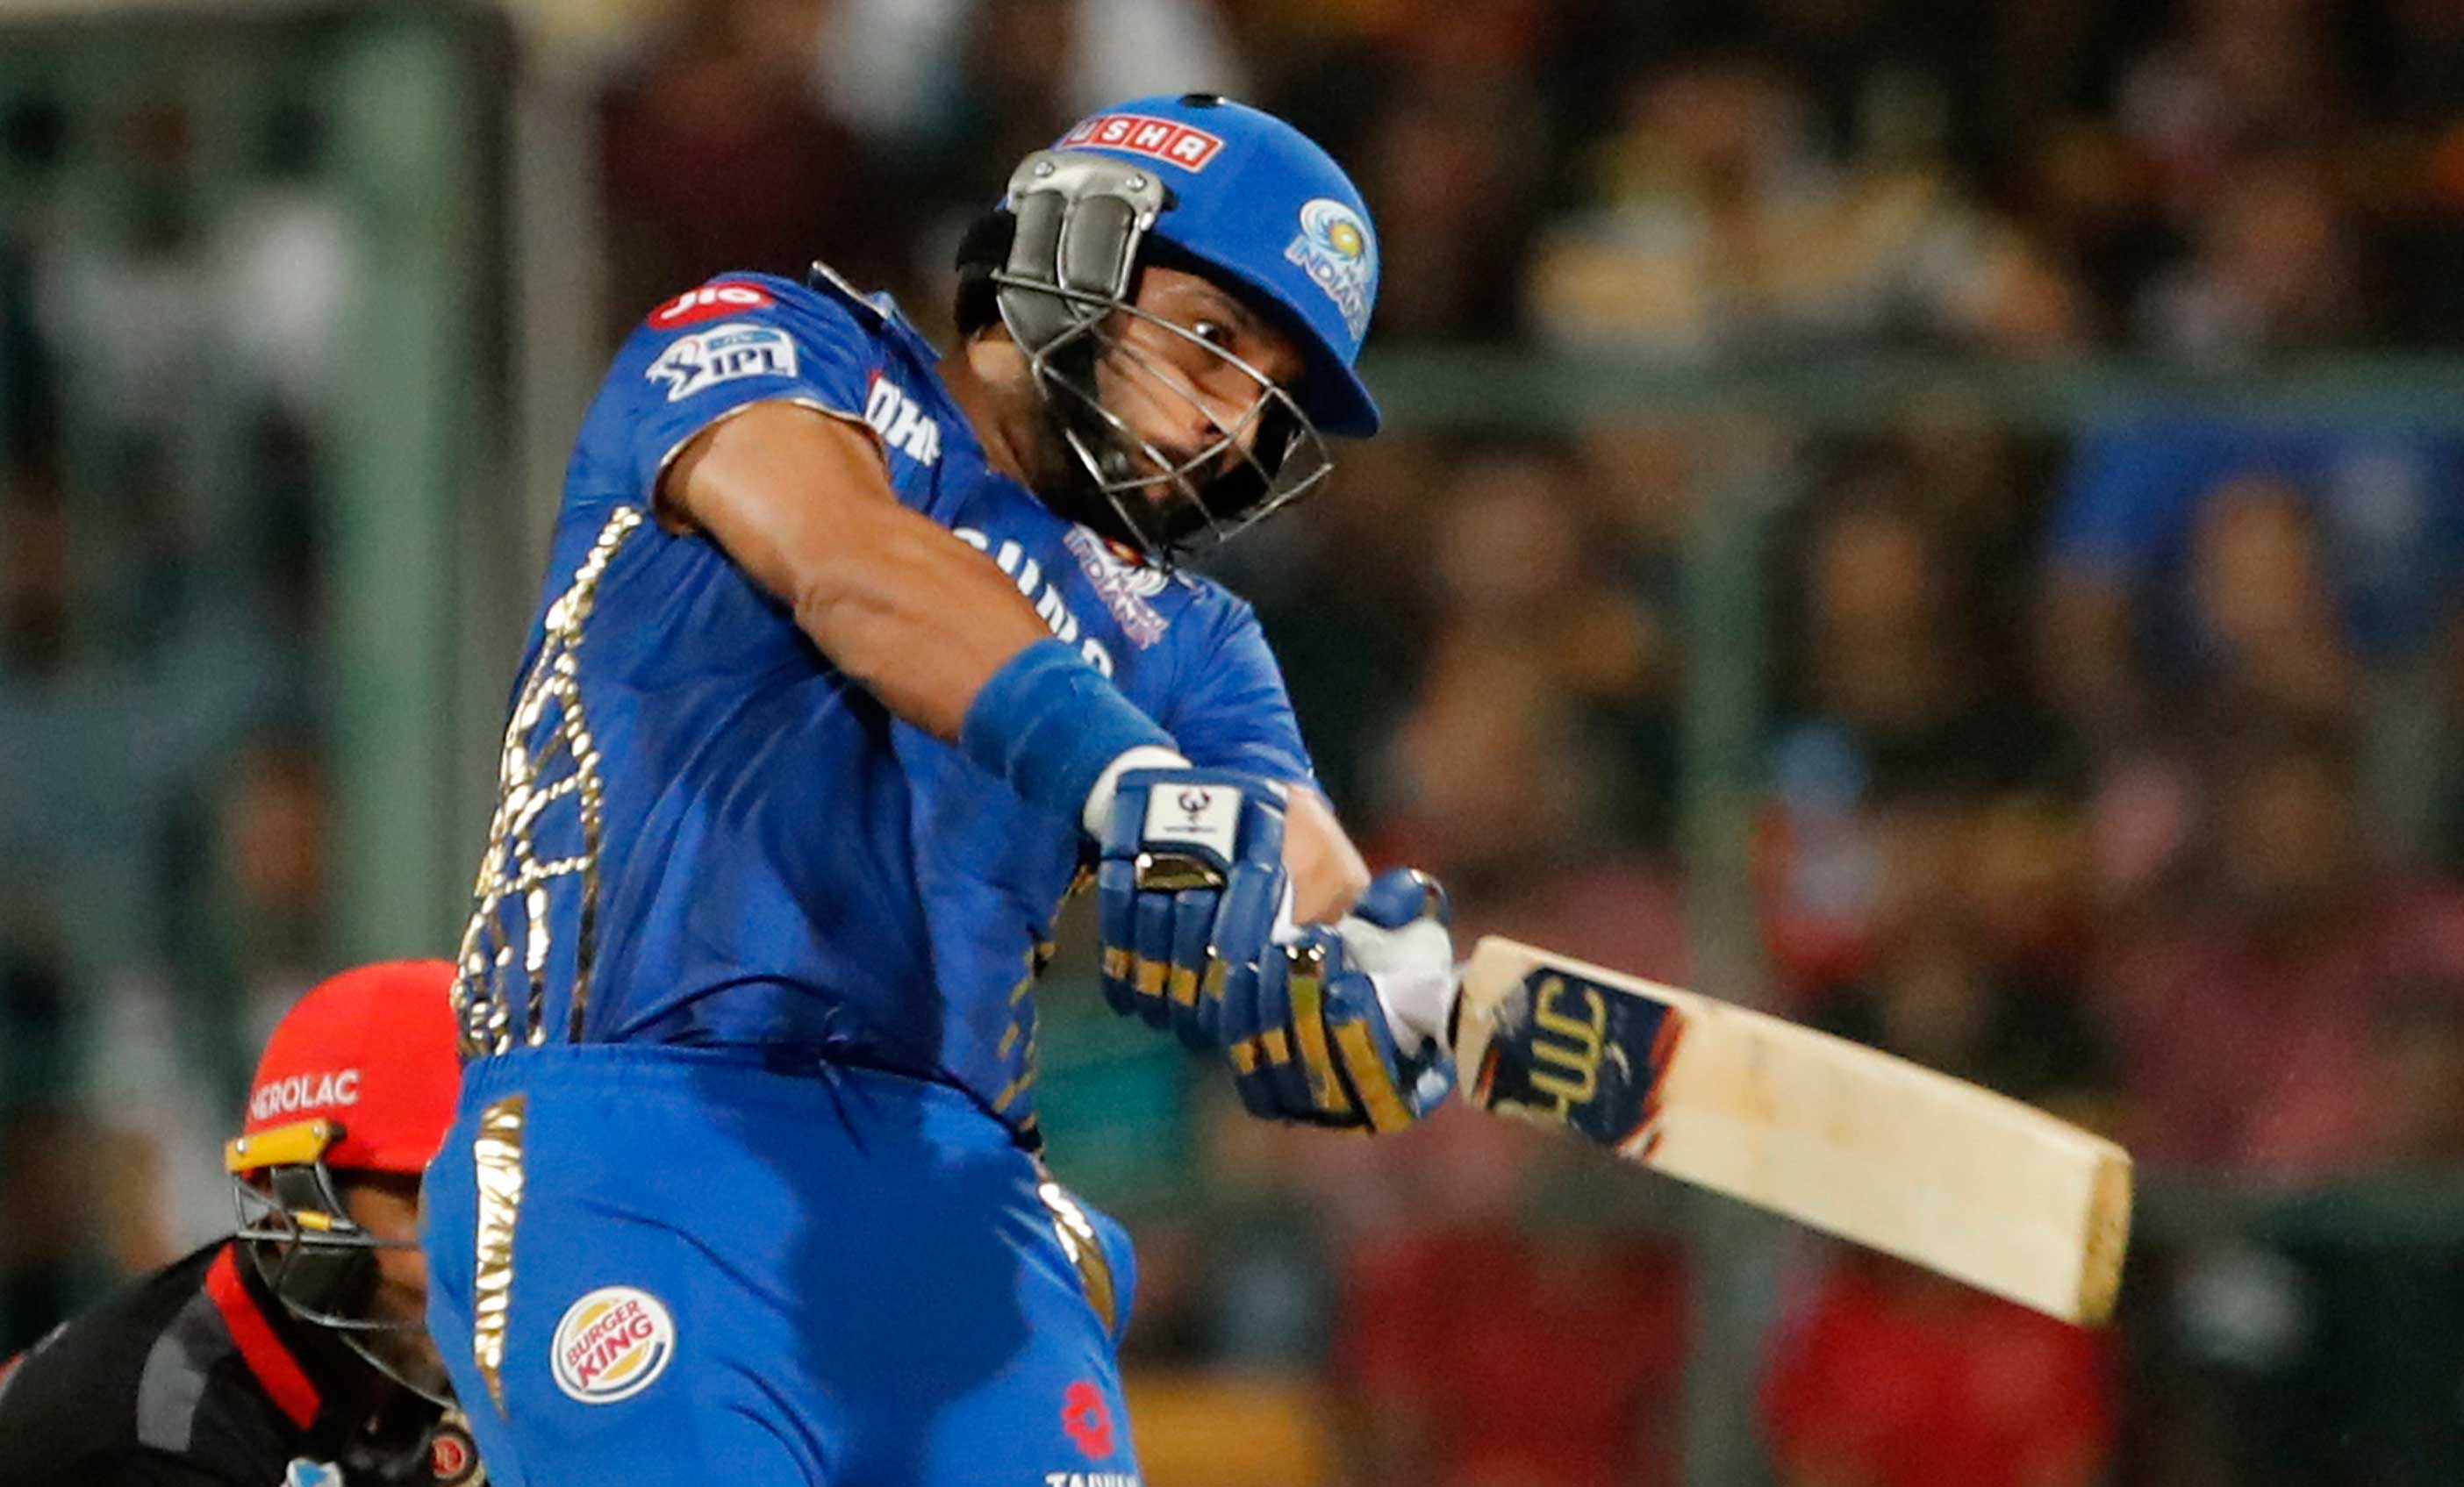 Yuvraj Singh plays a shot during the IPL T20 cricket match between Royal Challengers Bangalore and Mumbai Indians in Bangalore, on March 28, 2019.